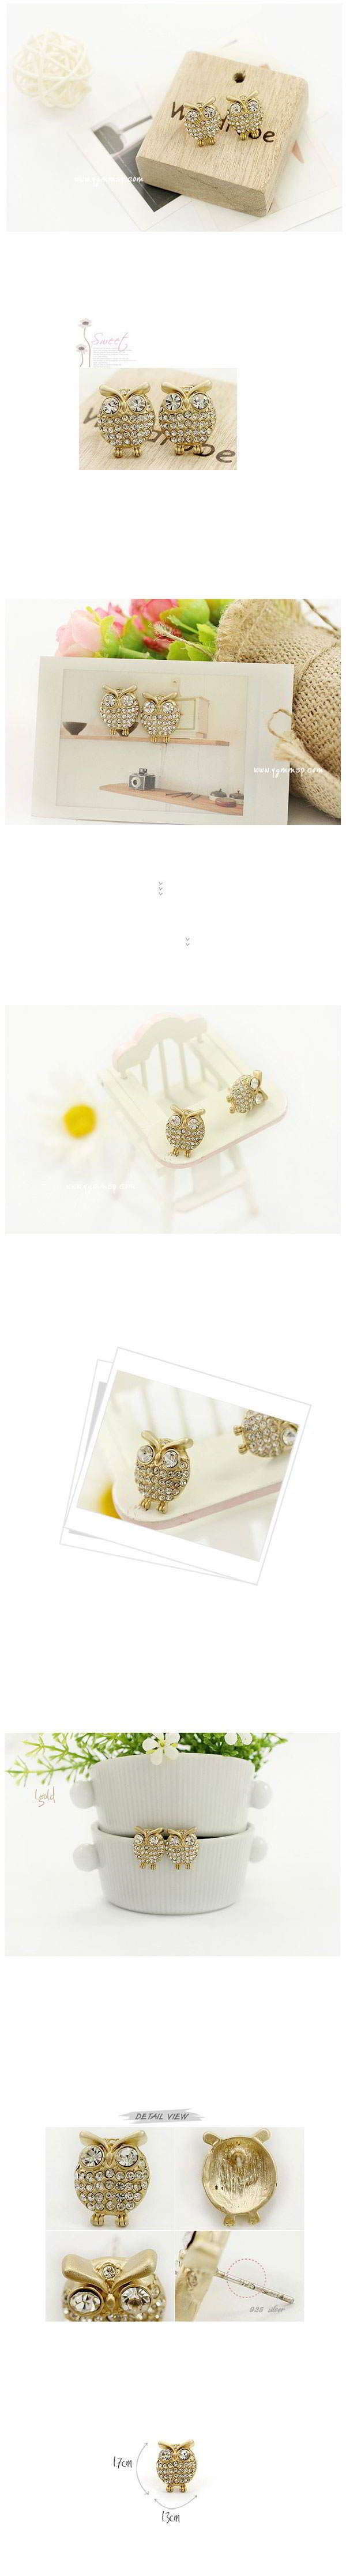 Korean Exquisite Lovely Fashion OWL Decorated With Rhinestones Charm Design Studs Earrings General. Small and catchy. REPIN if you like it.😍  Only 43.5 IDR